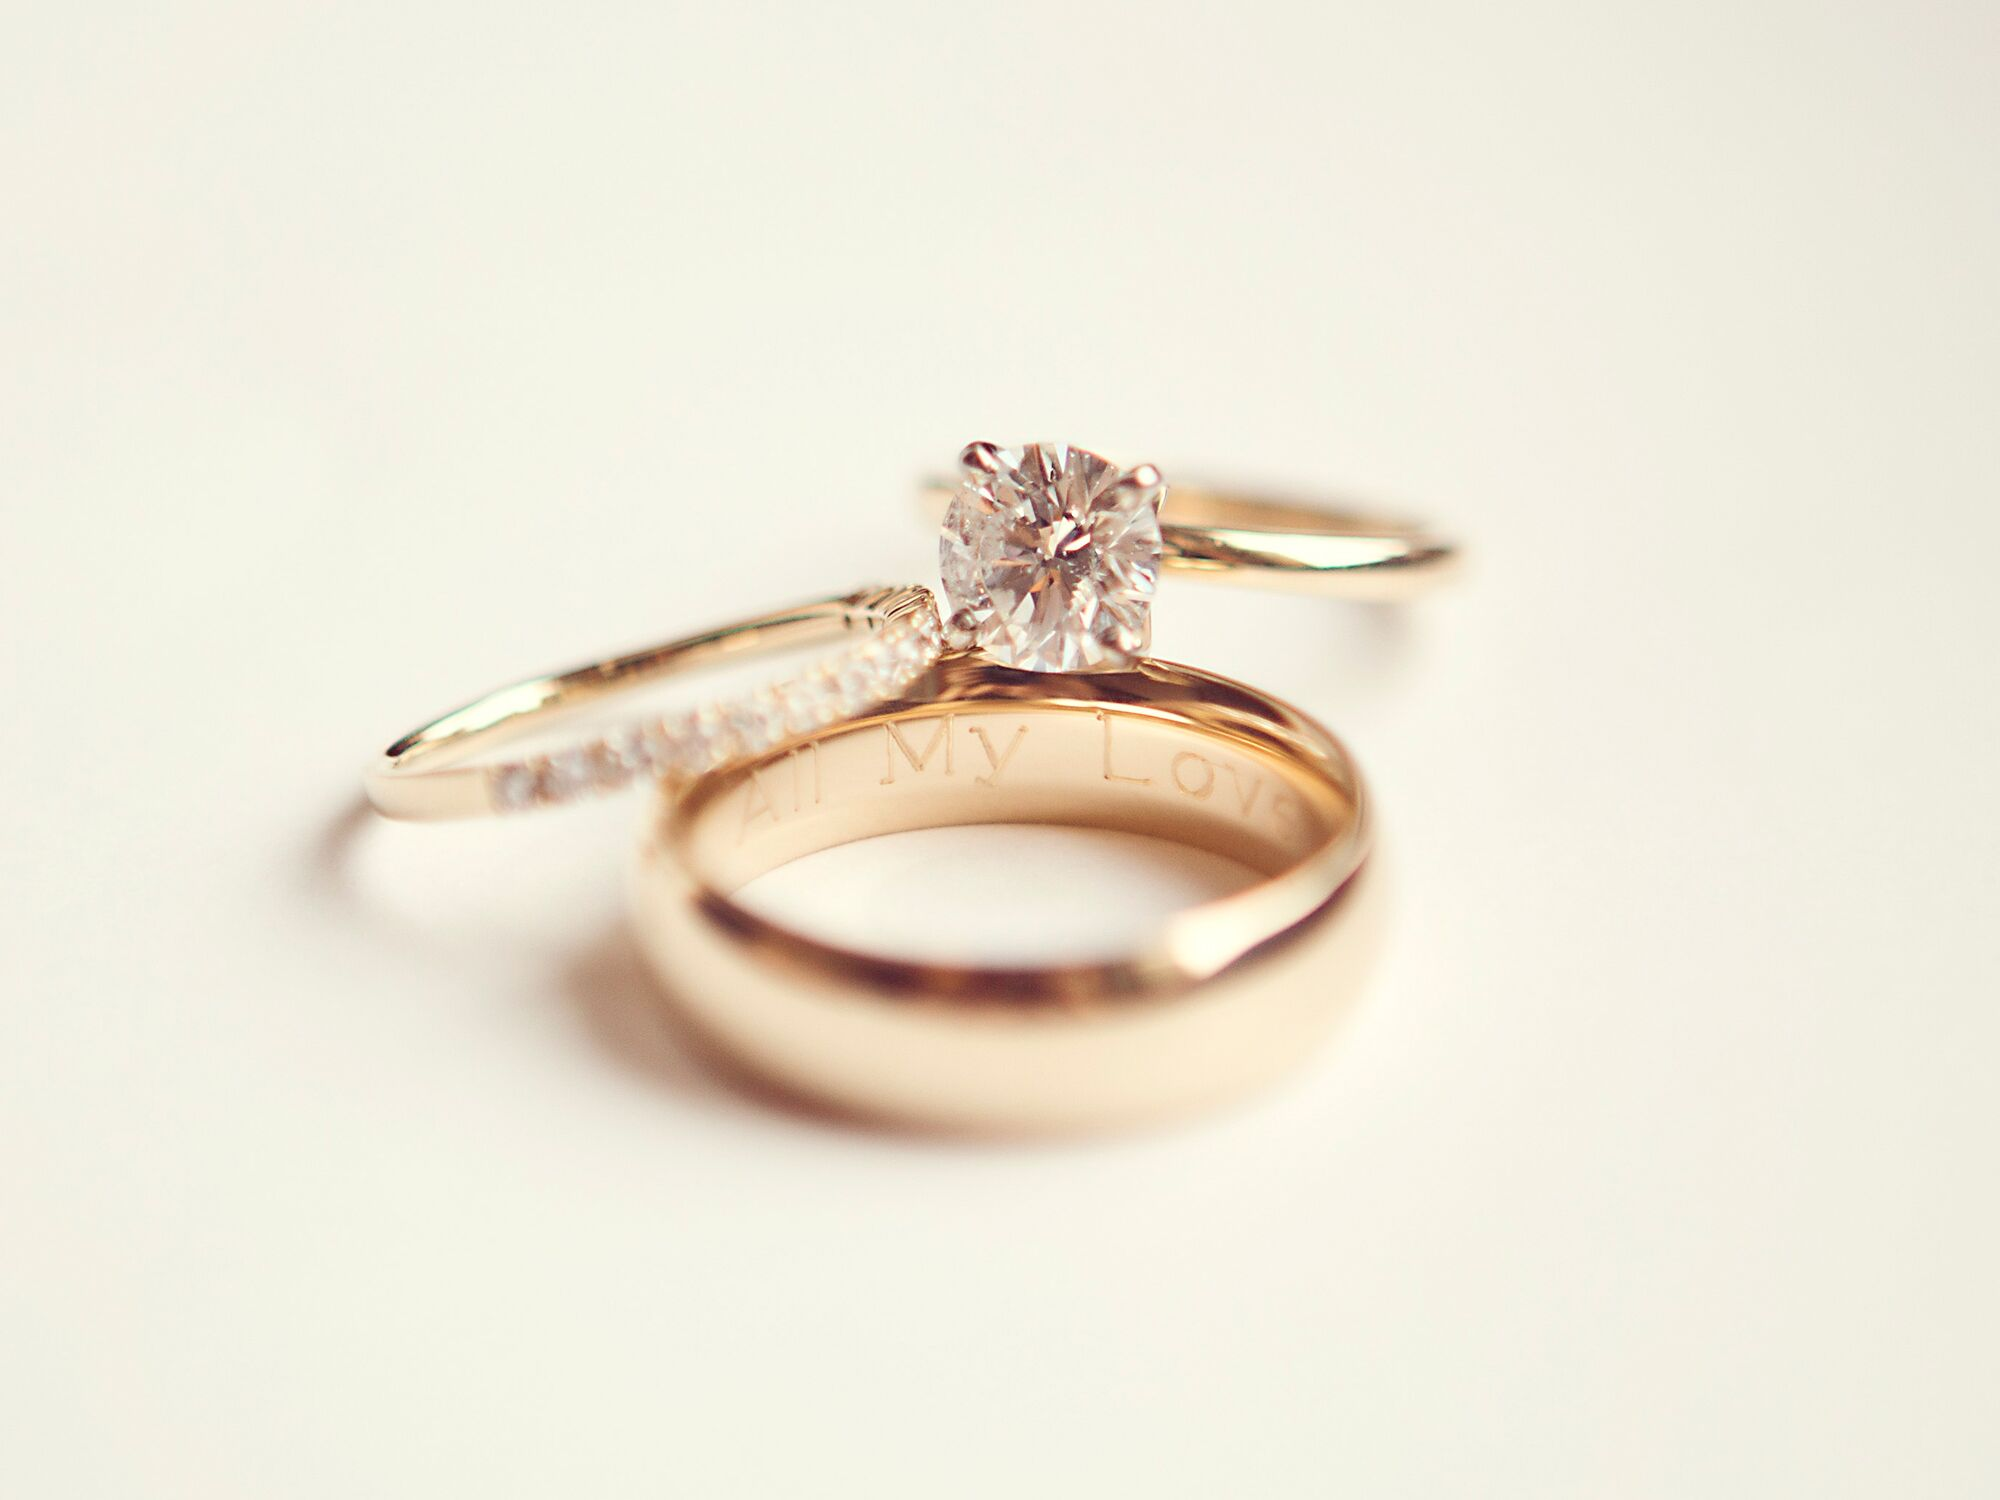 ring finger what hand does wedding and engagement ring go on - Pictures Of Wedding Rings